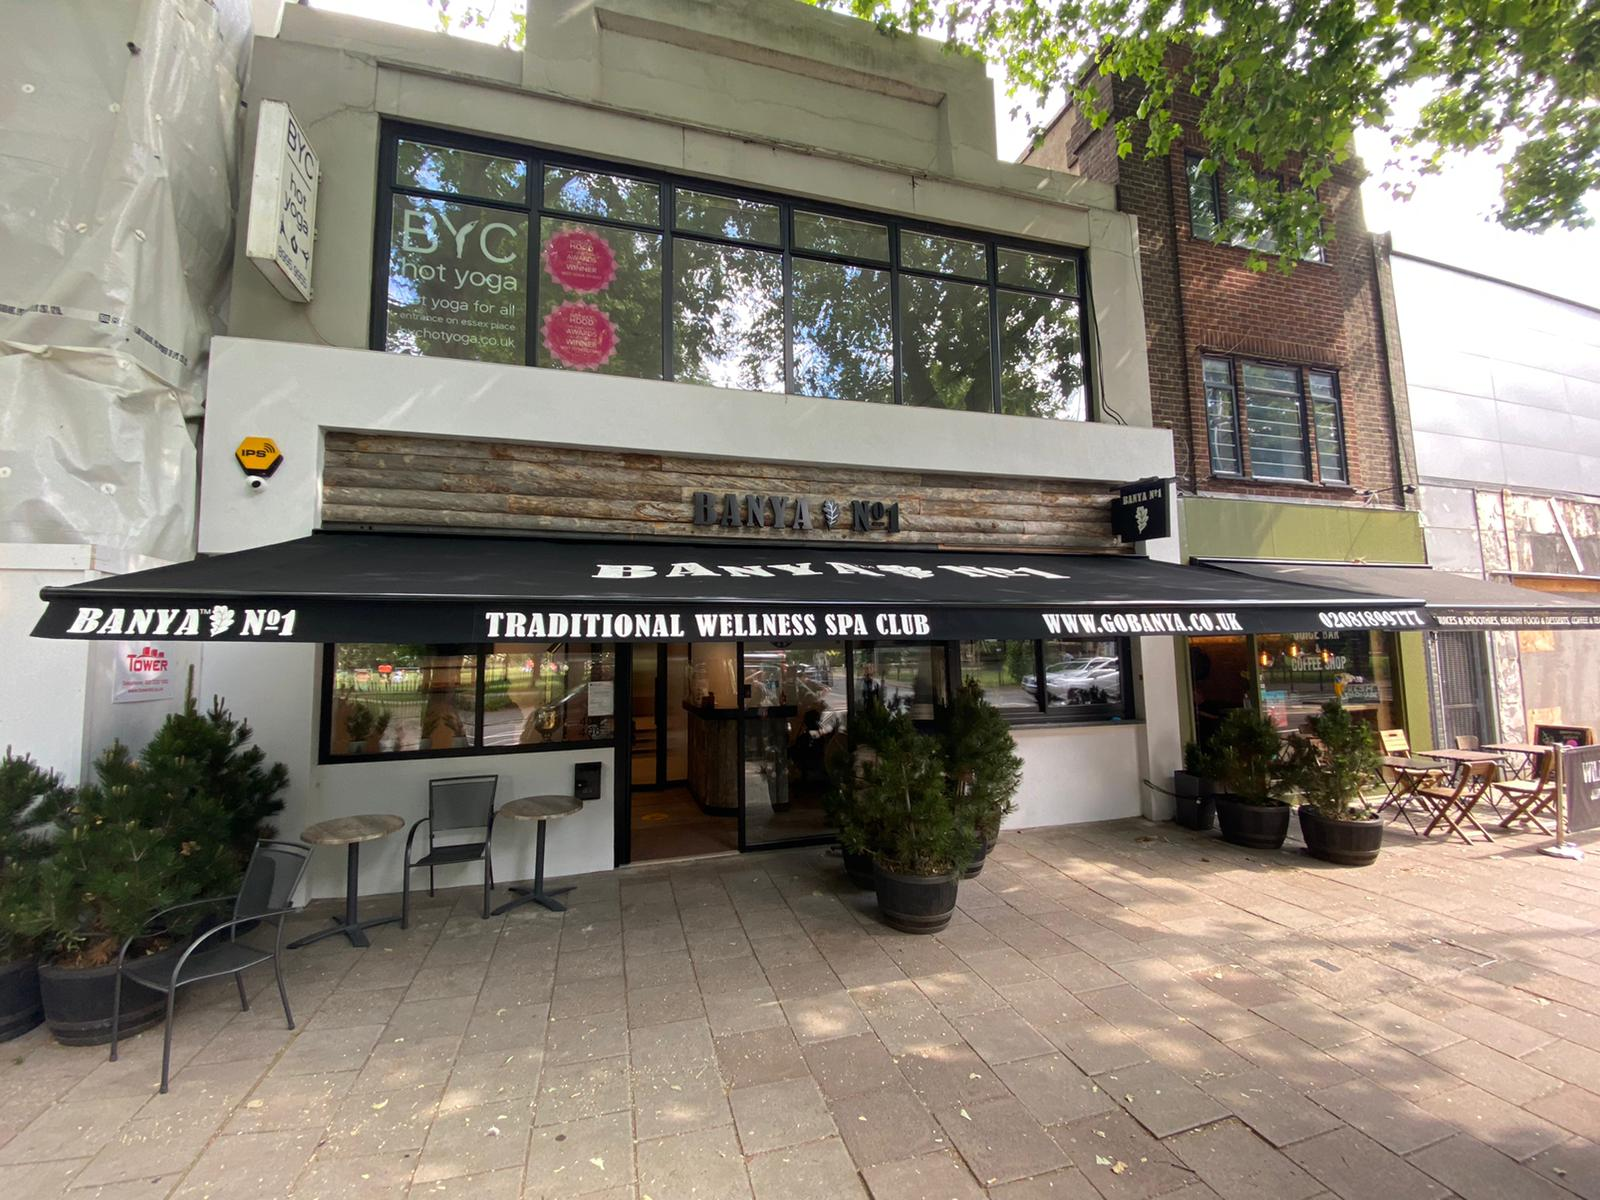 Radiant Installs New Commercial Awning for Wellness Spa in Chiswick, London